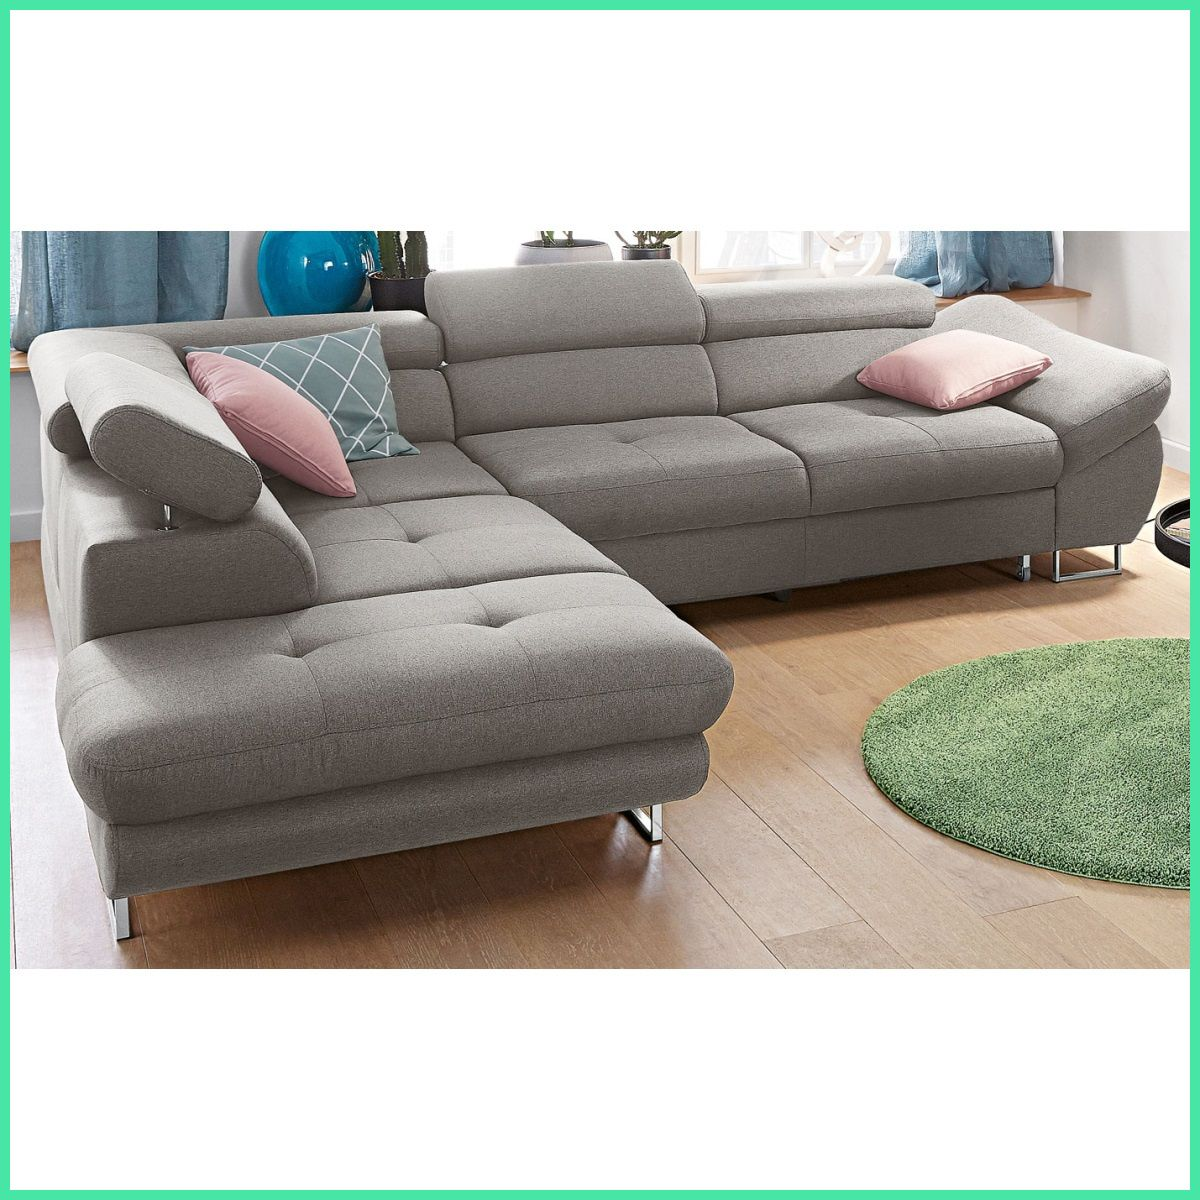 17 Ideen Porta Ecksofa Mit Schlaffunktion In 2020 Sectional Couch Home Decor Decor